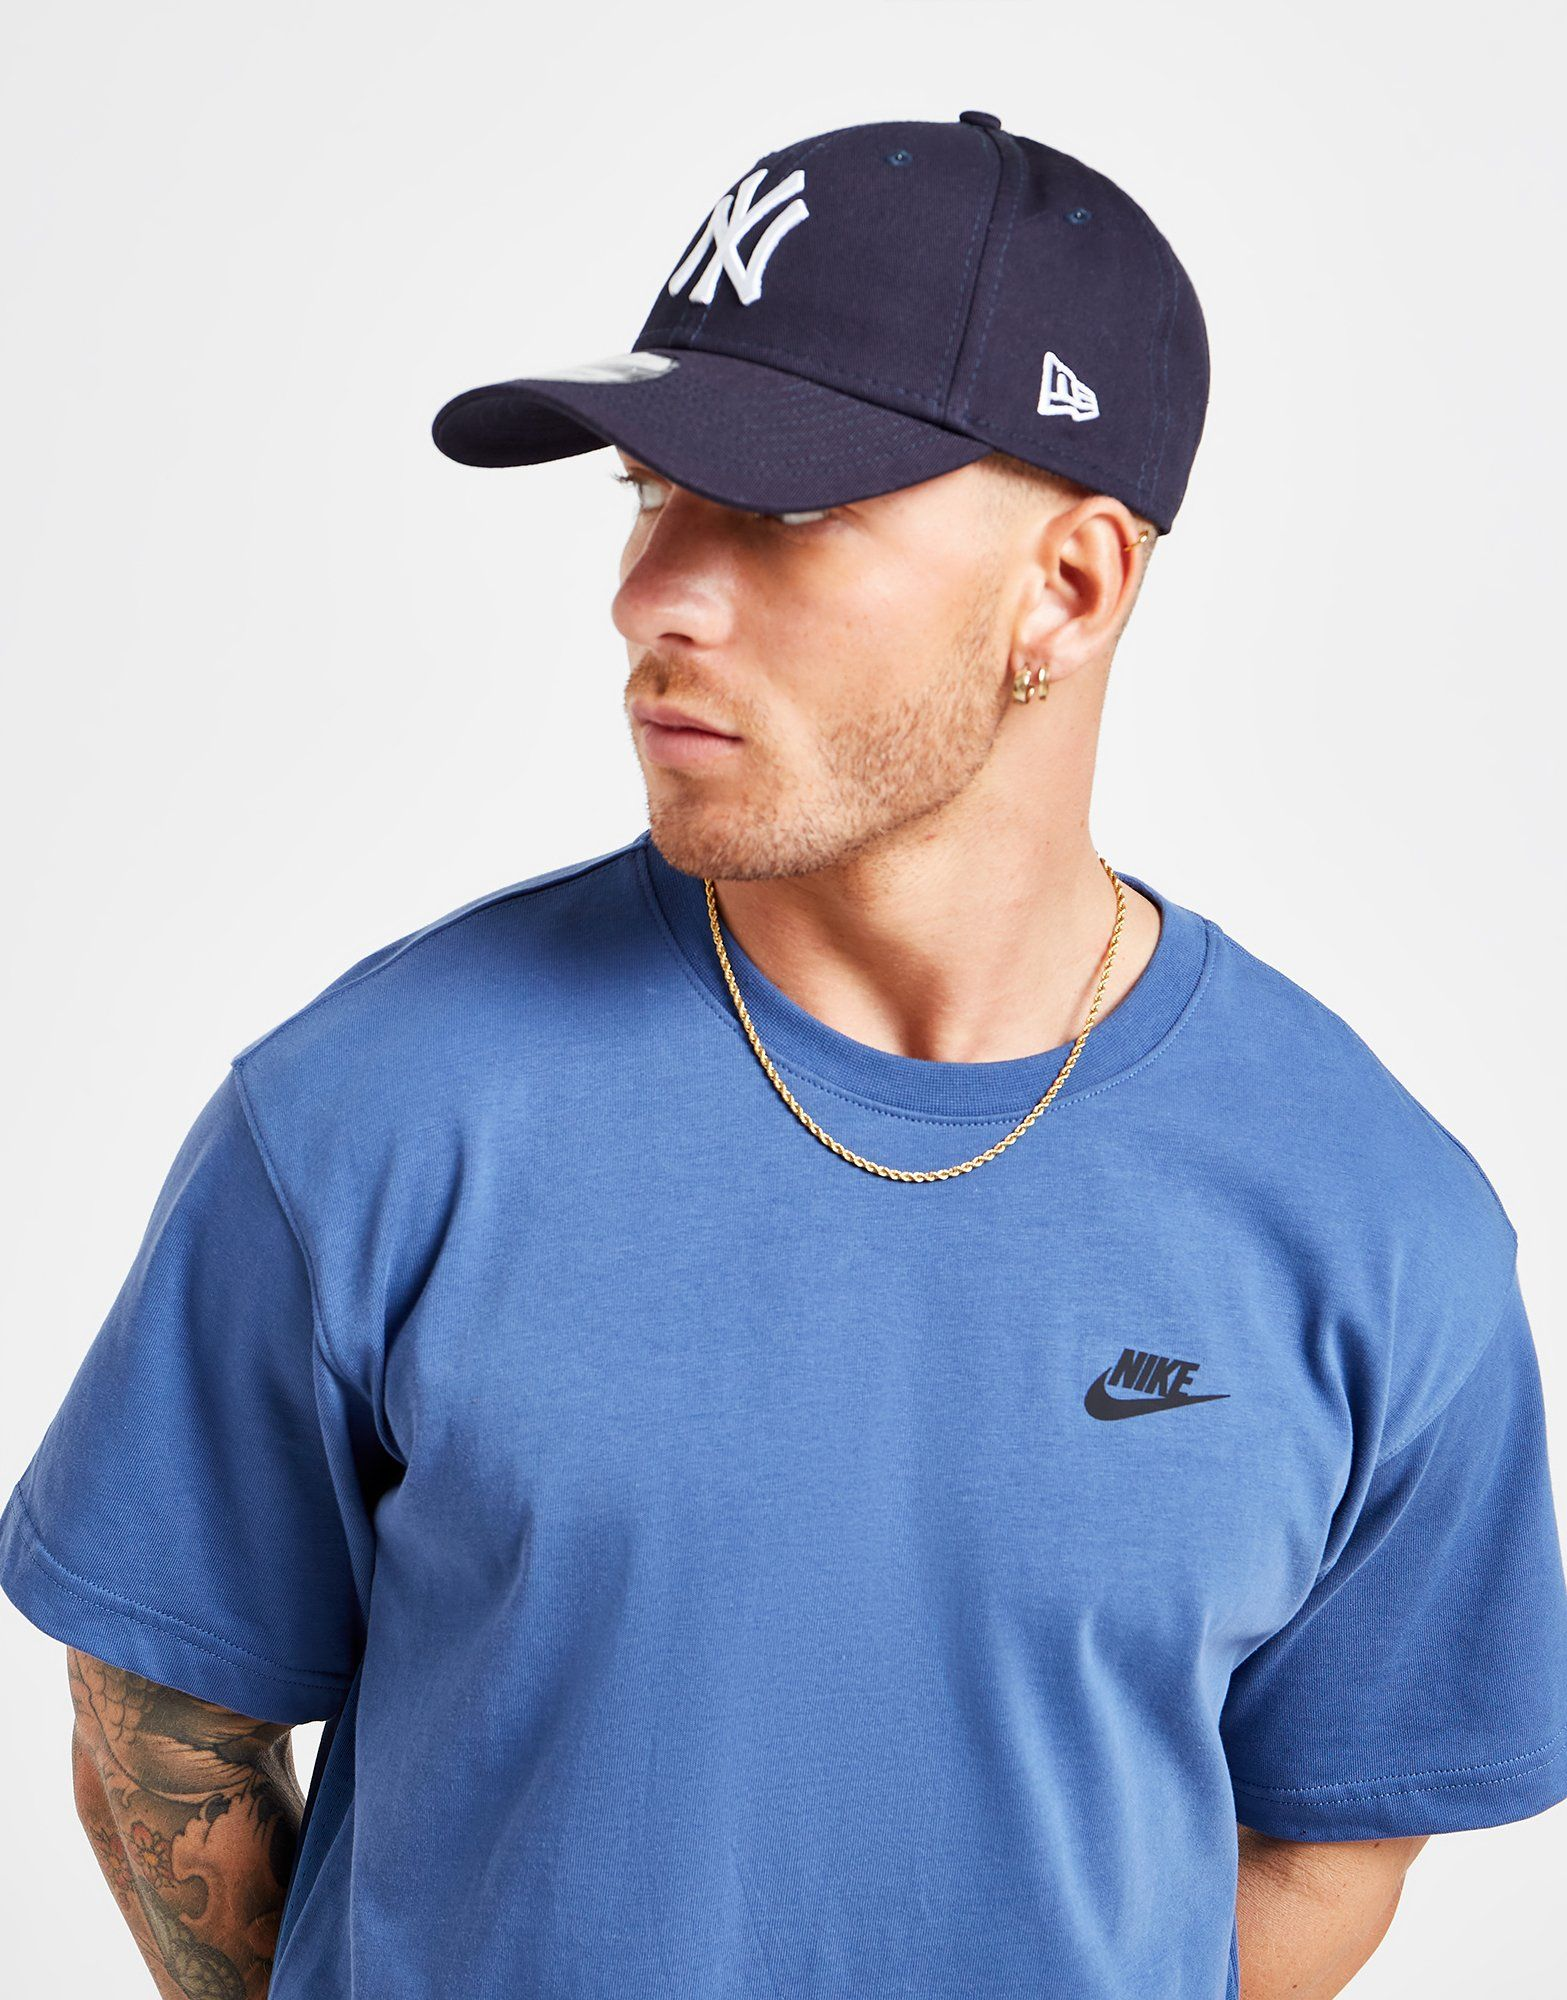 73d193b41c406 New Era MLB New York Yankees 9FORTY Cap